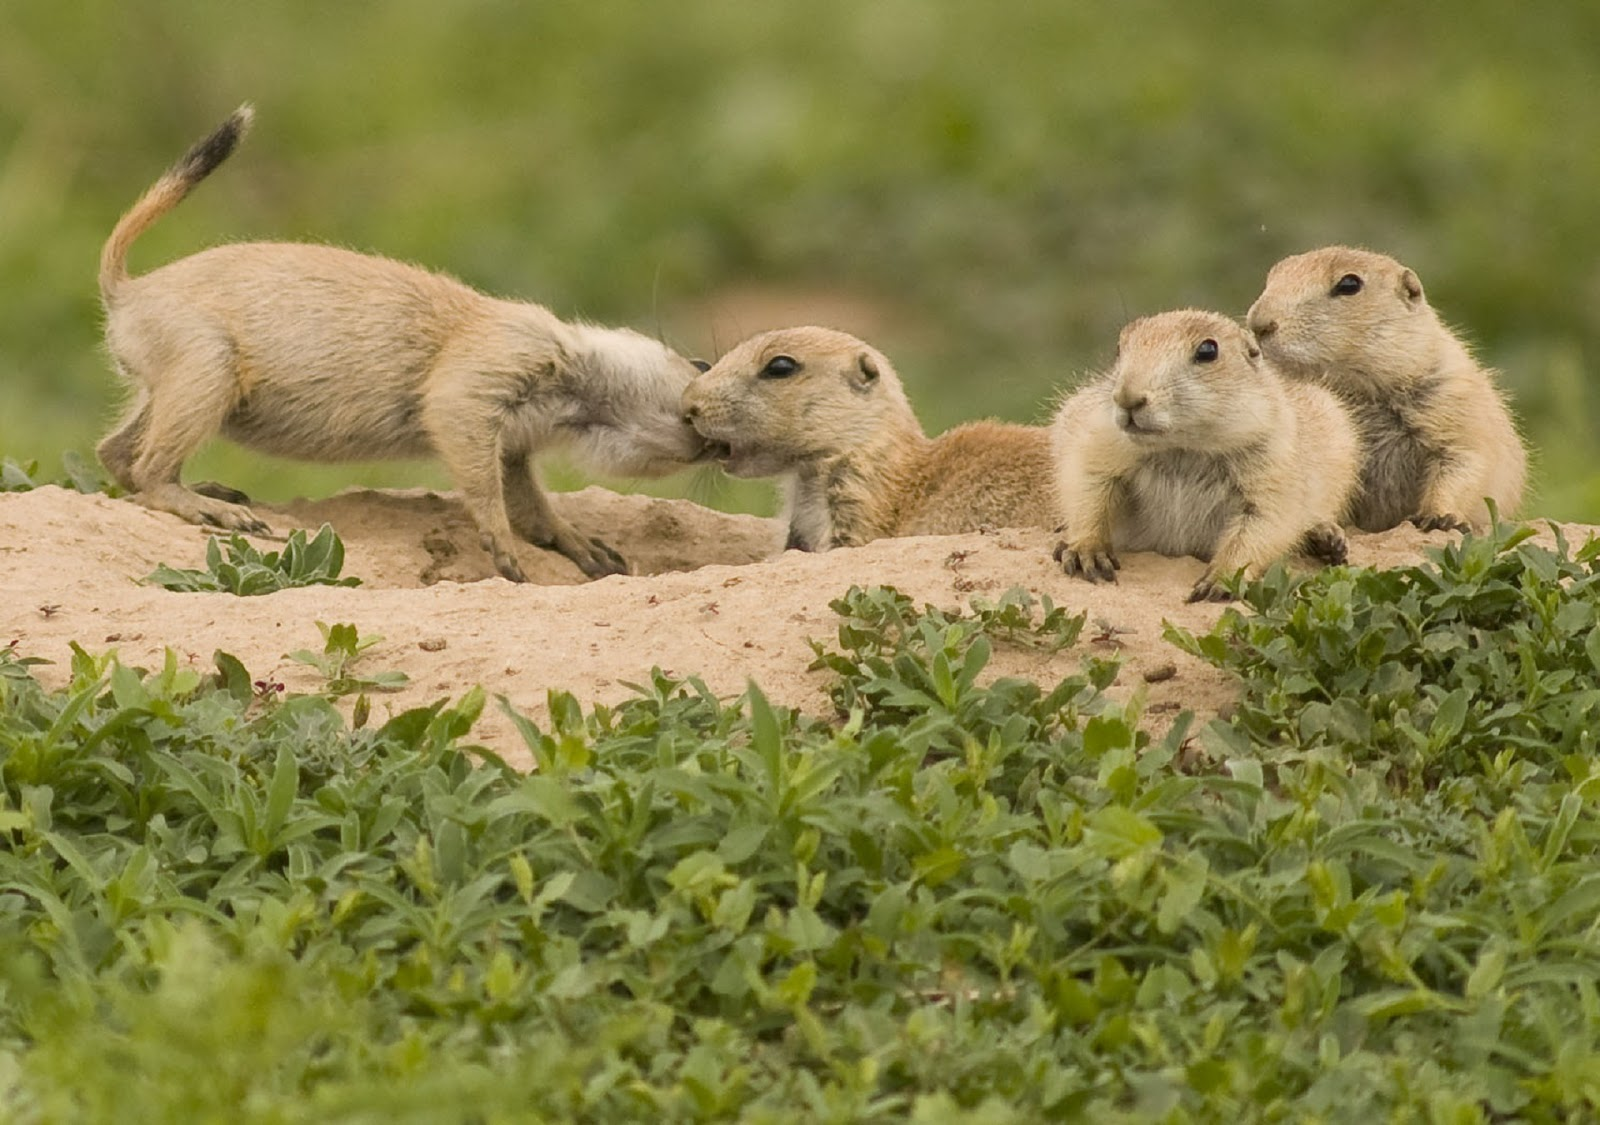 A group of prairie dogs.